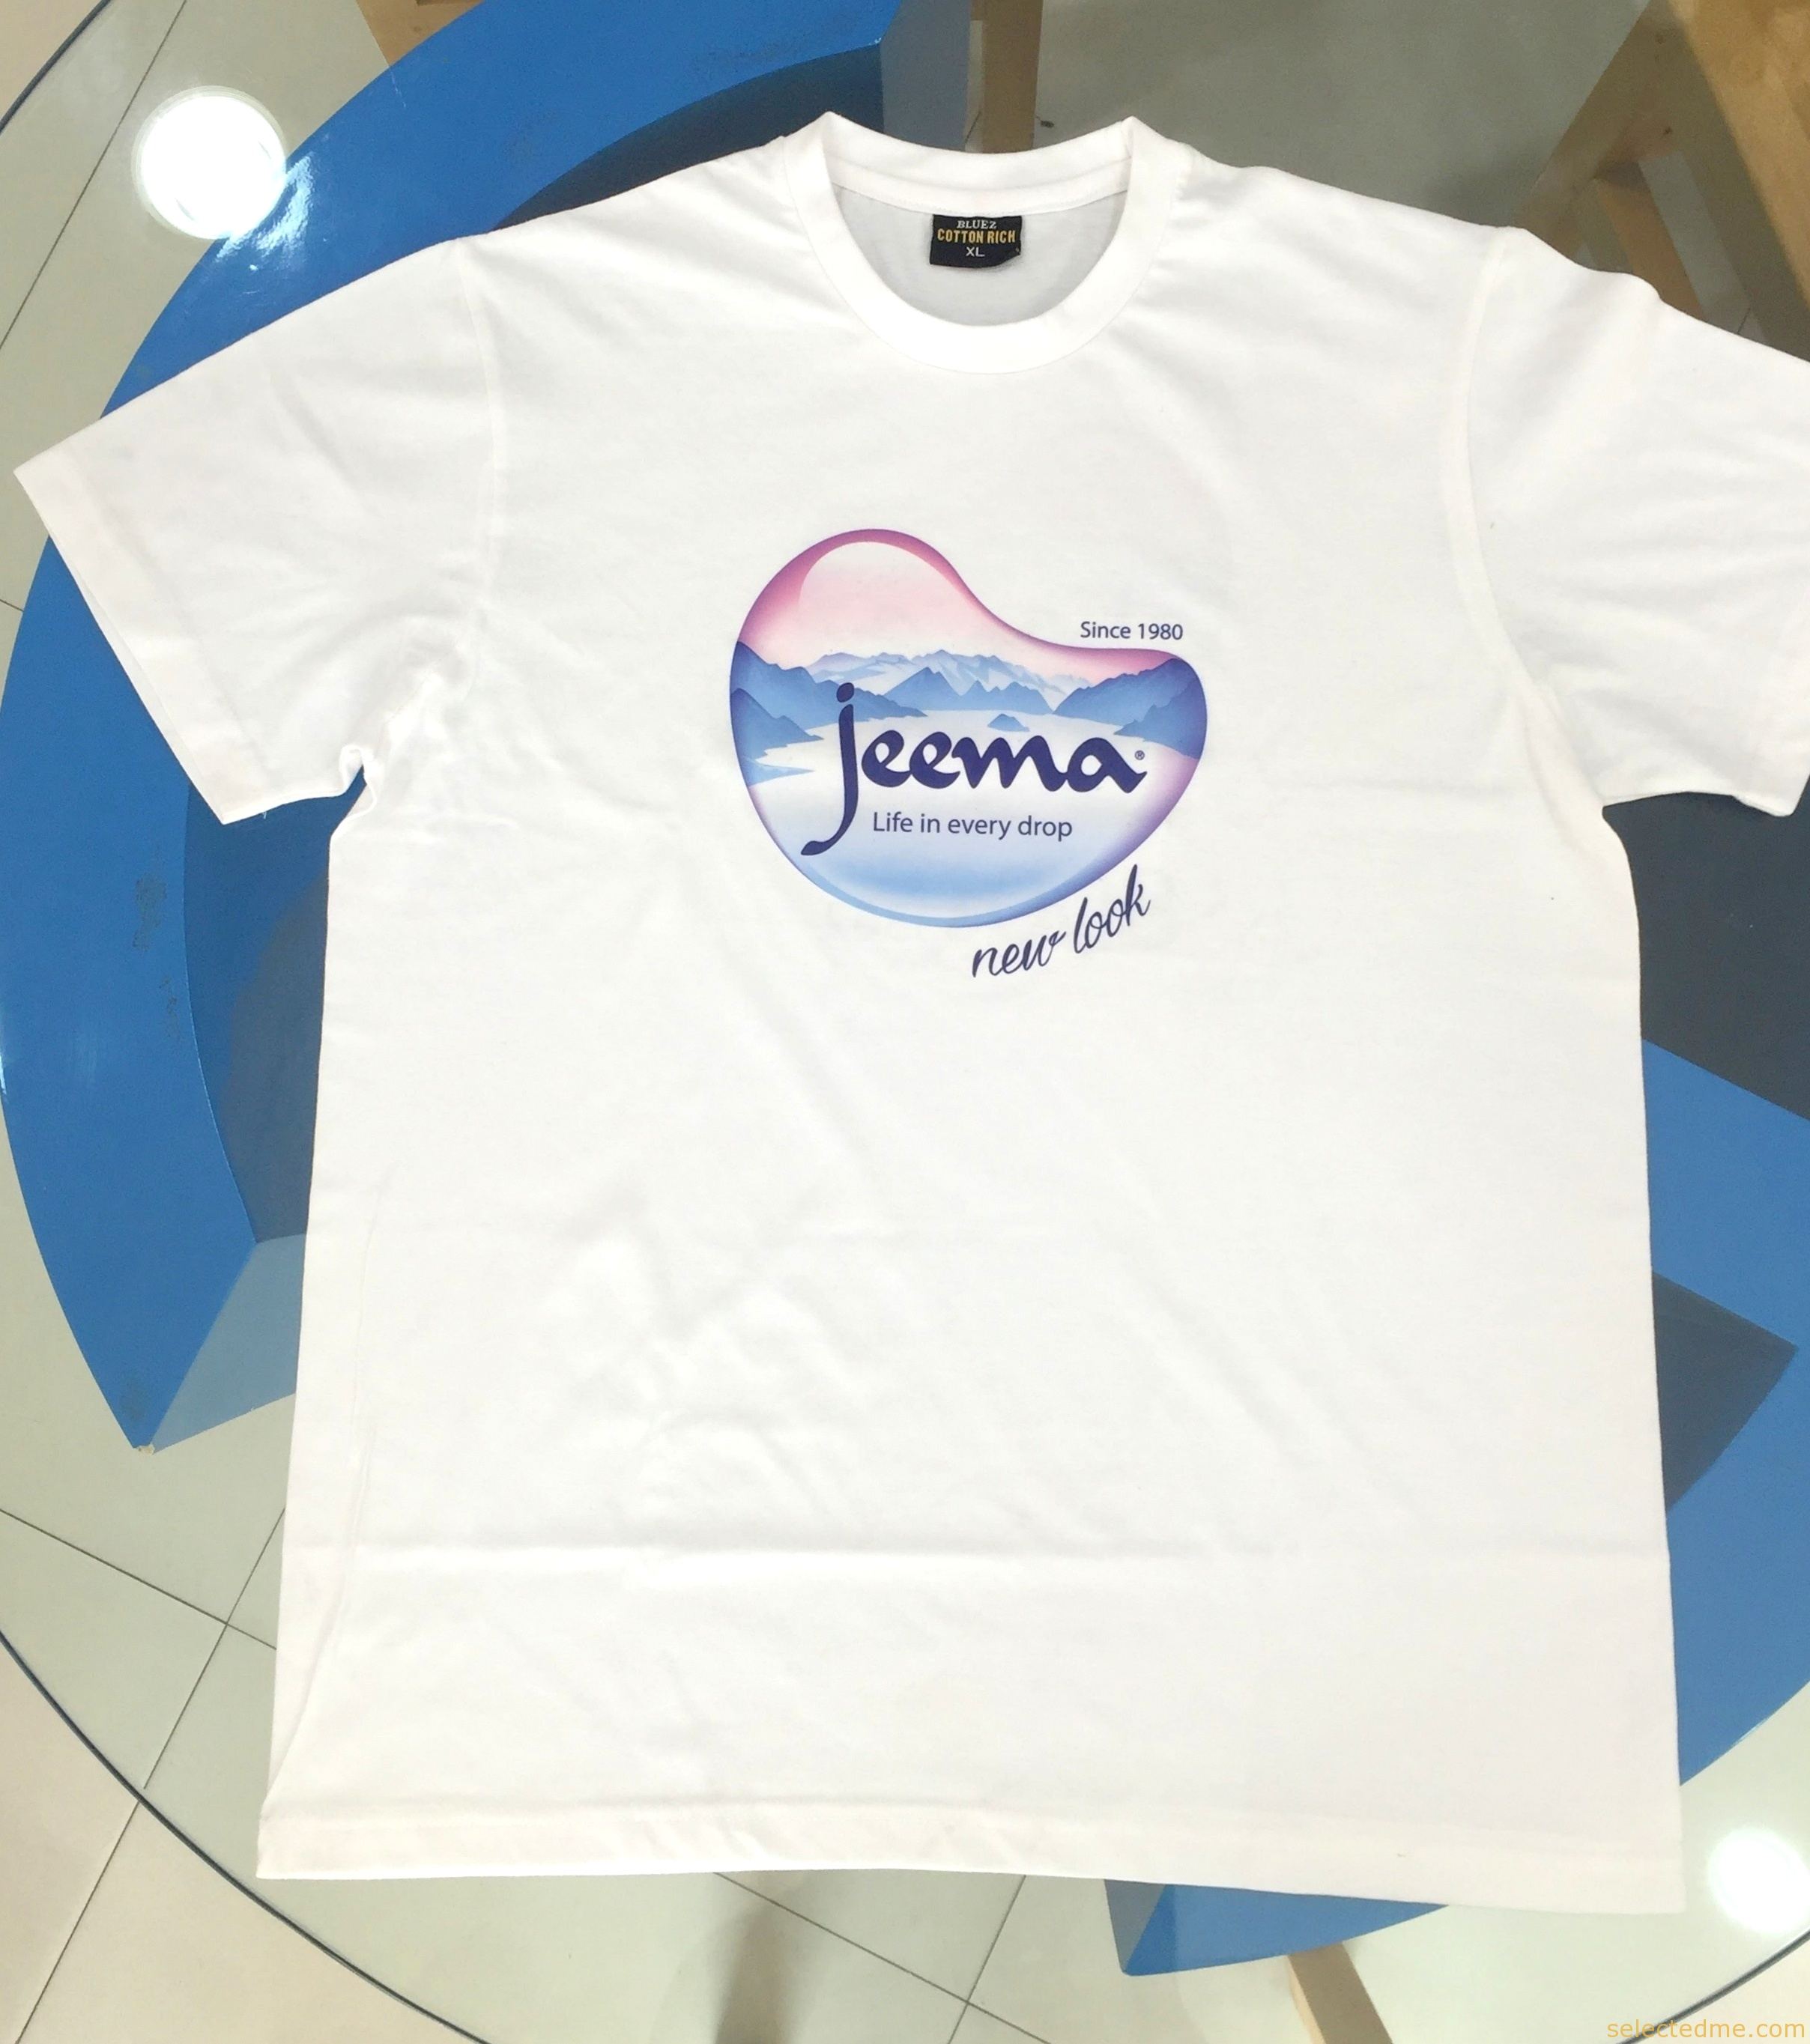 80f26f5e2 T-shirts printing Dubai - Personalized Tshirts with screen printing,  sublimation printing in UAE ...